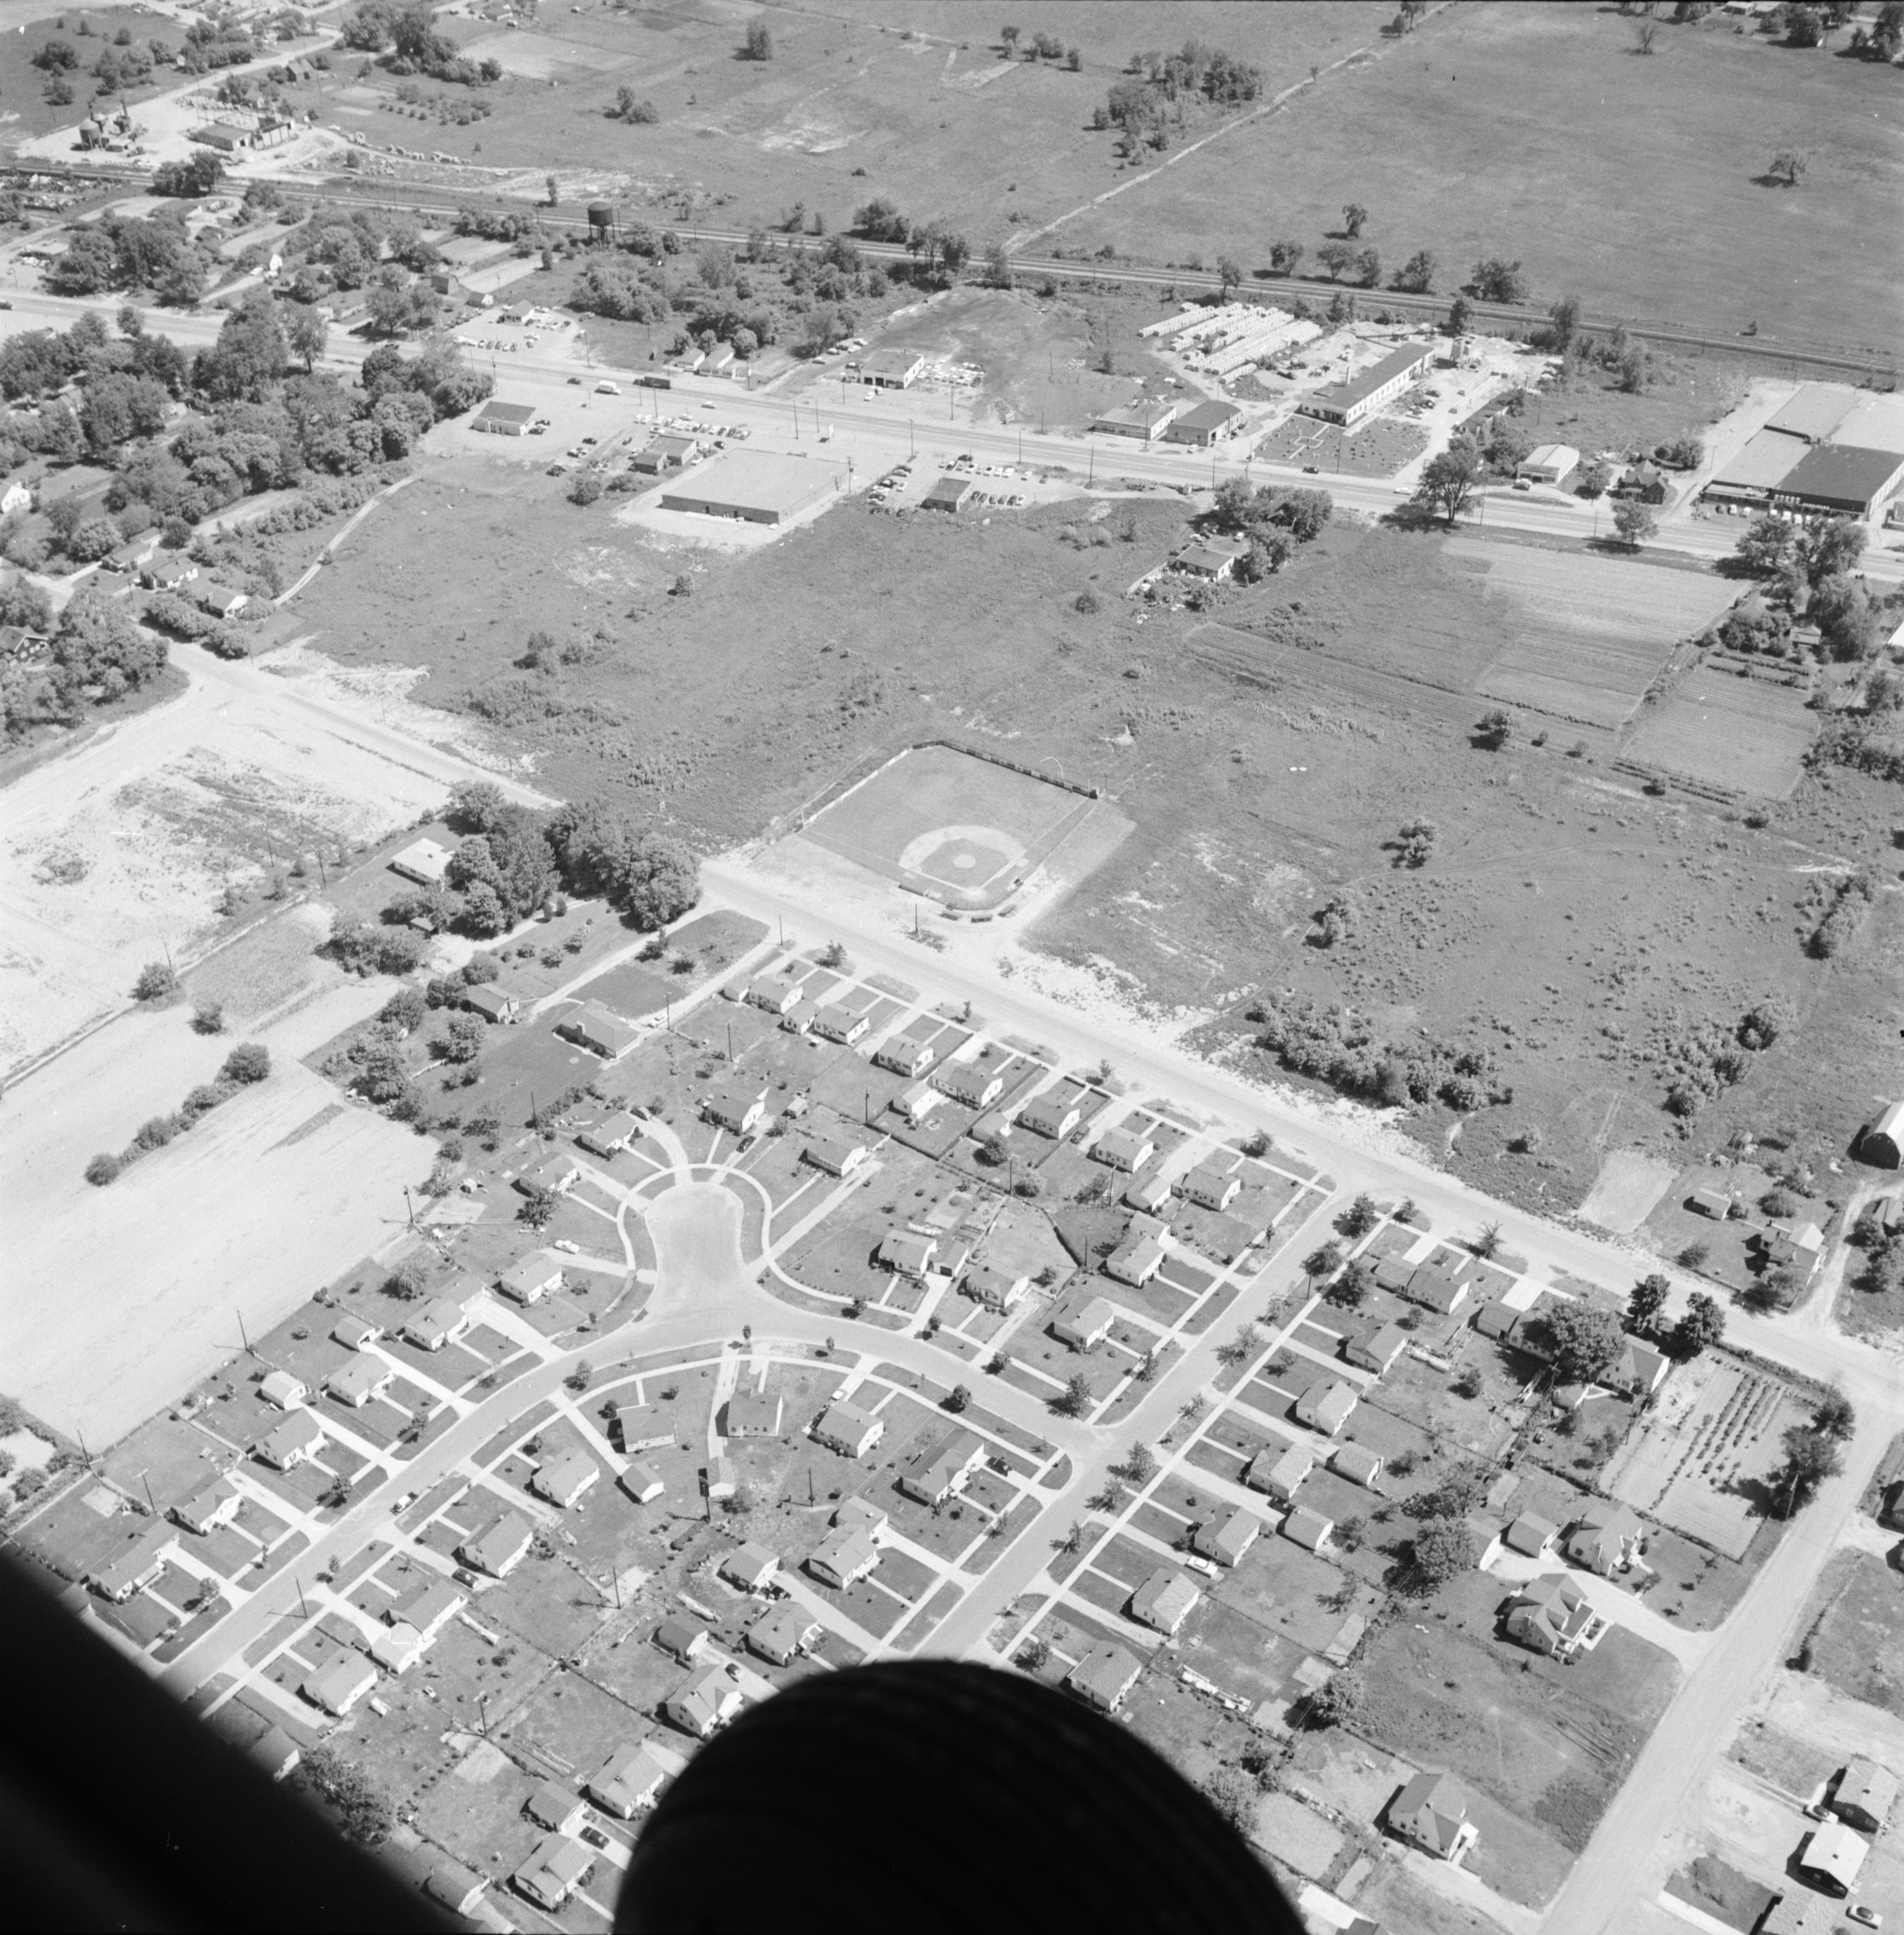 Aerial Photograph of Ypsilanti Junior High School, E. Cross St., July 1957 image